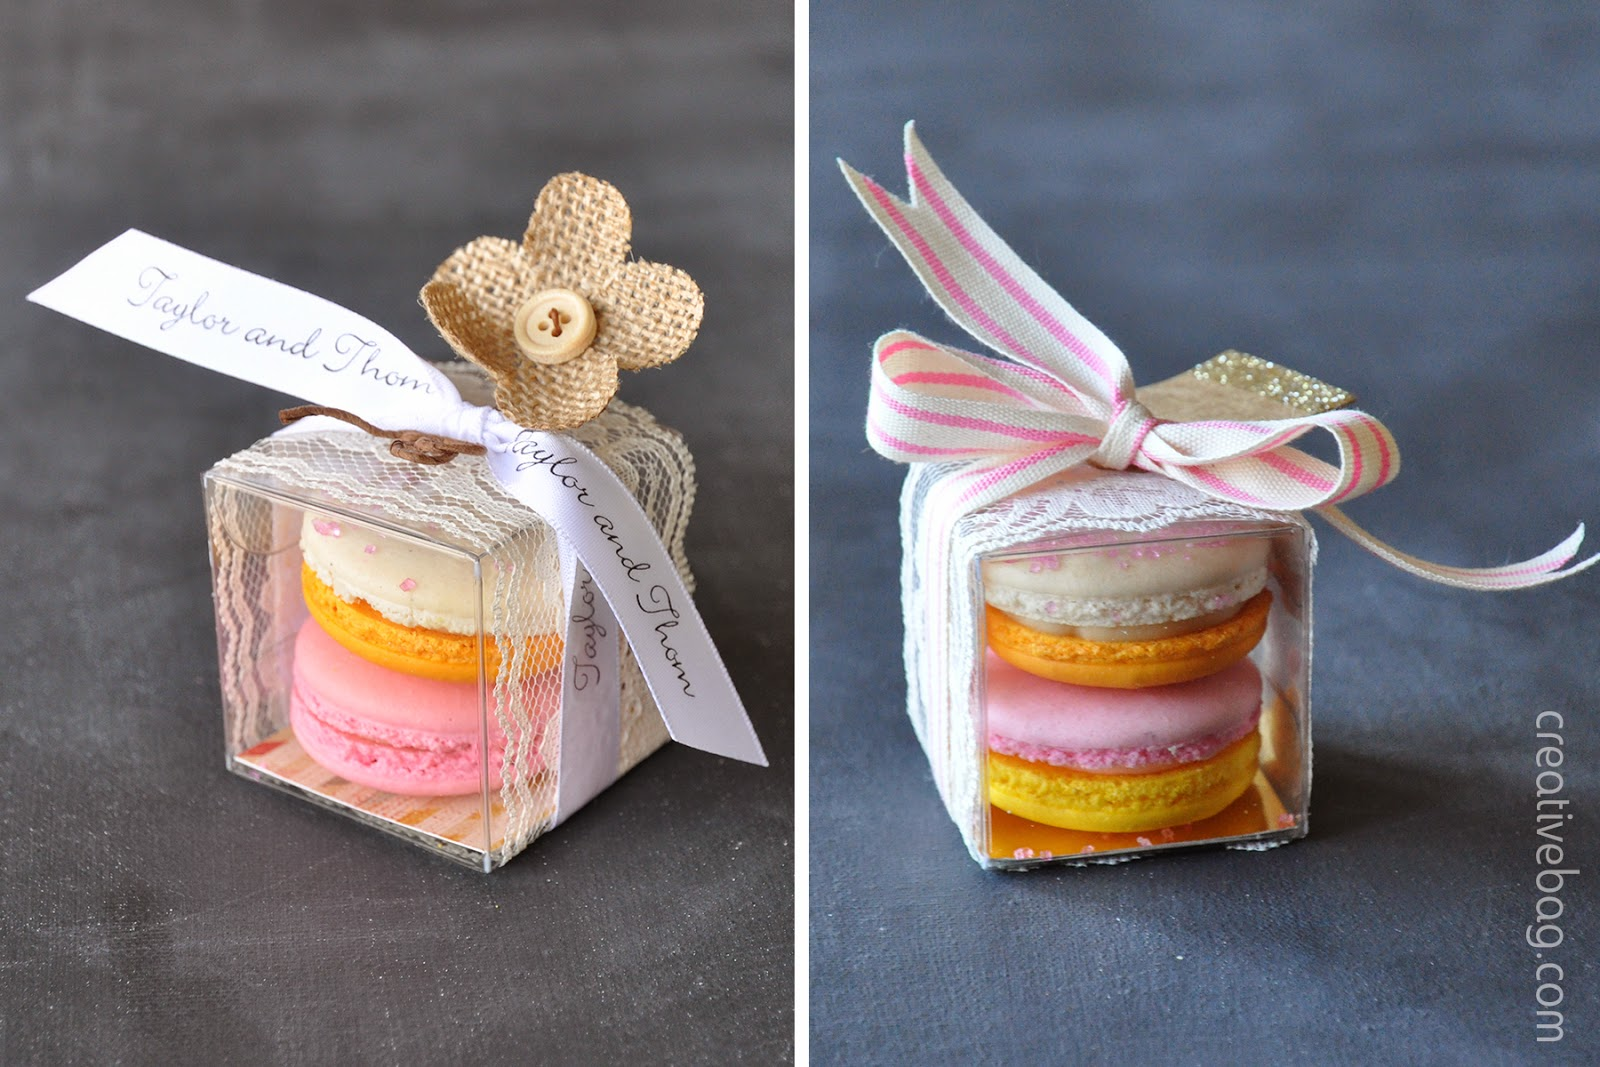 macaron packaging from CreativeBag.com | macarons from MoRoCocholate.com